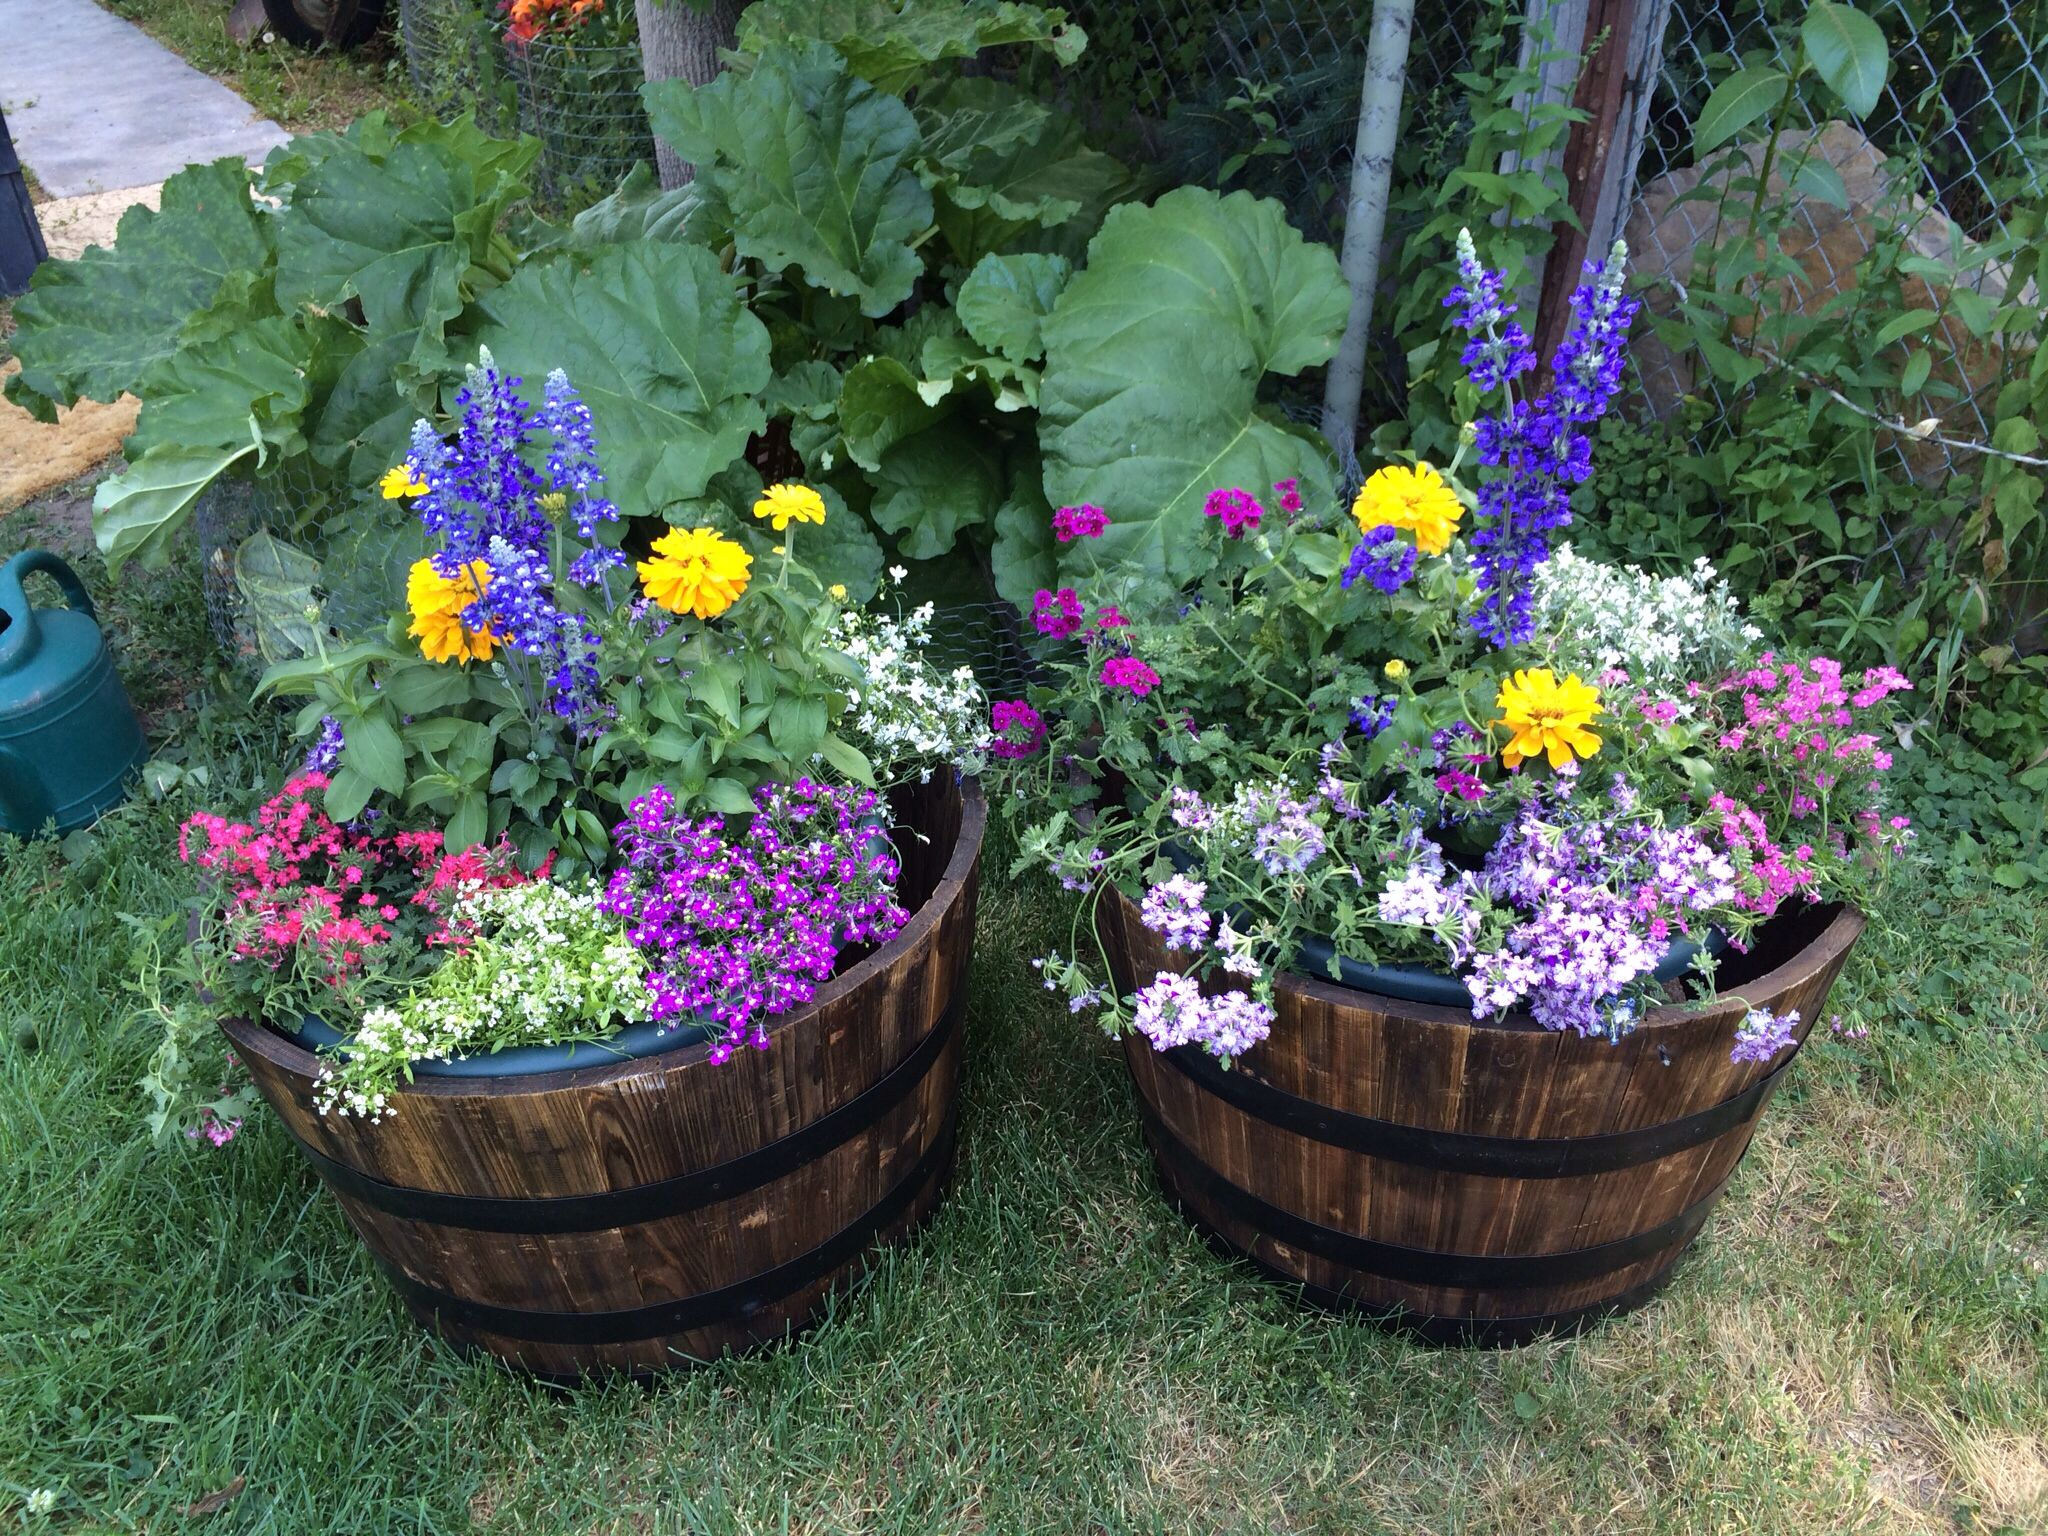 26 In Round Wooden Barrel Planter Hl6642 At The Home Depot Barrel Planter Wine Barrel Planter Whiskey Barrel Planter